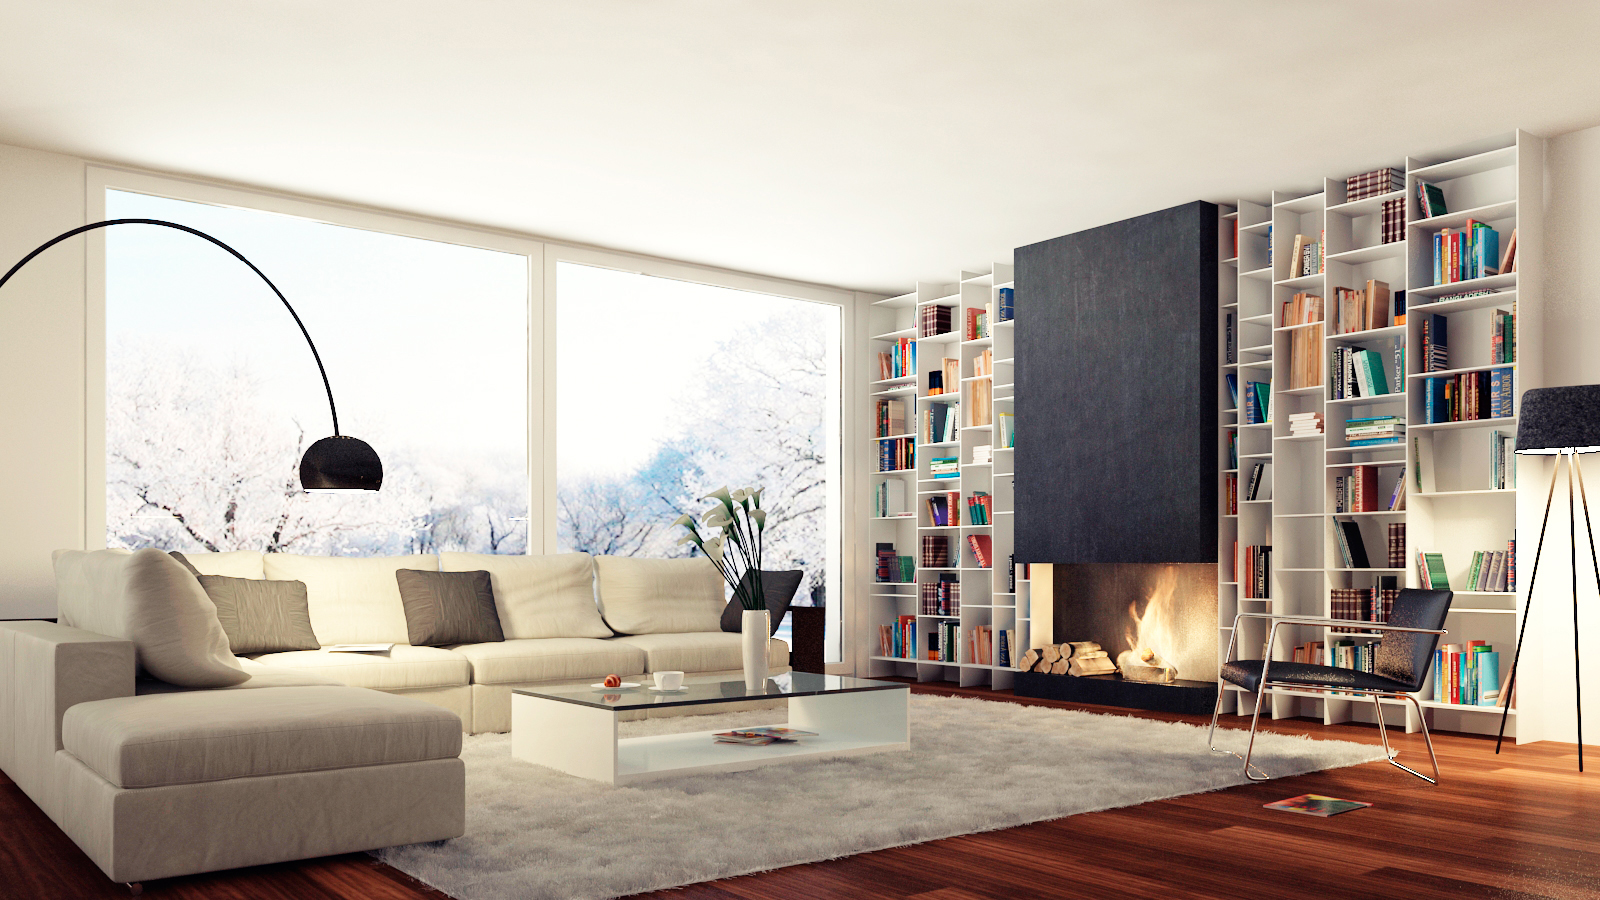 A Smart Home for a Smart Life